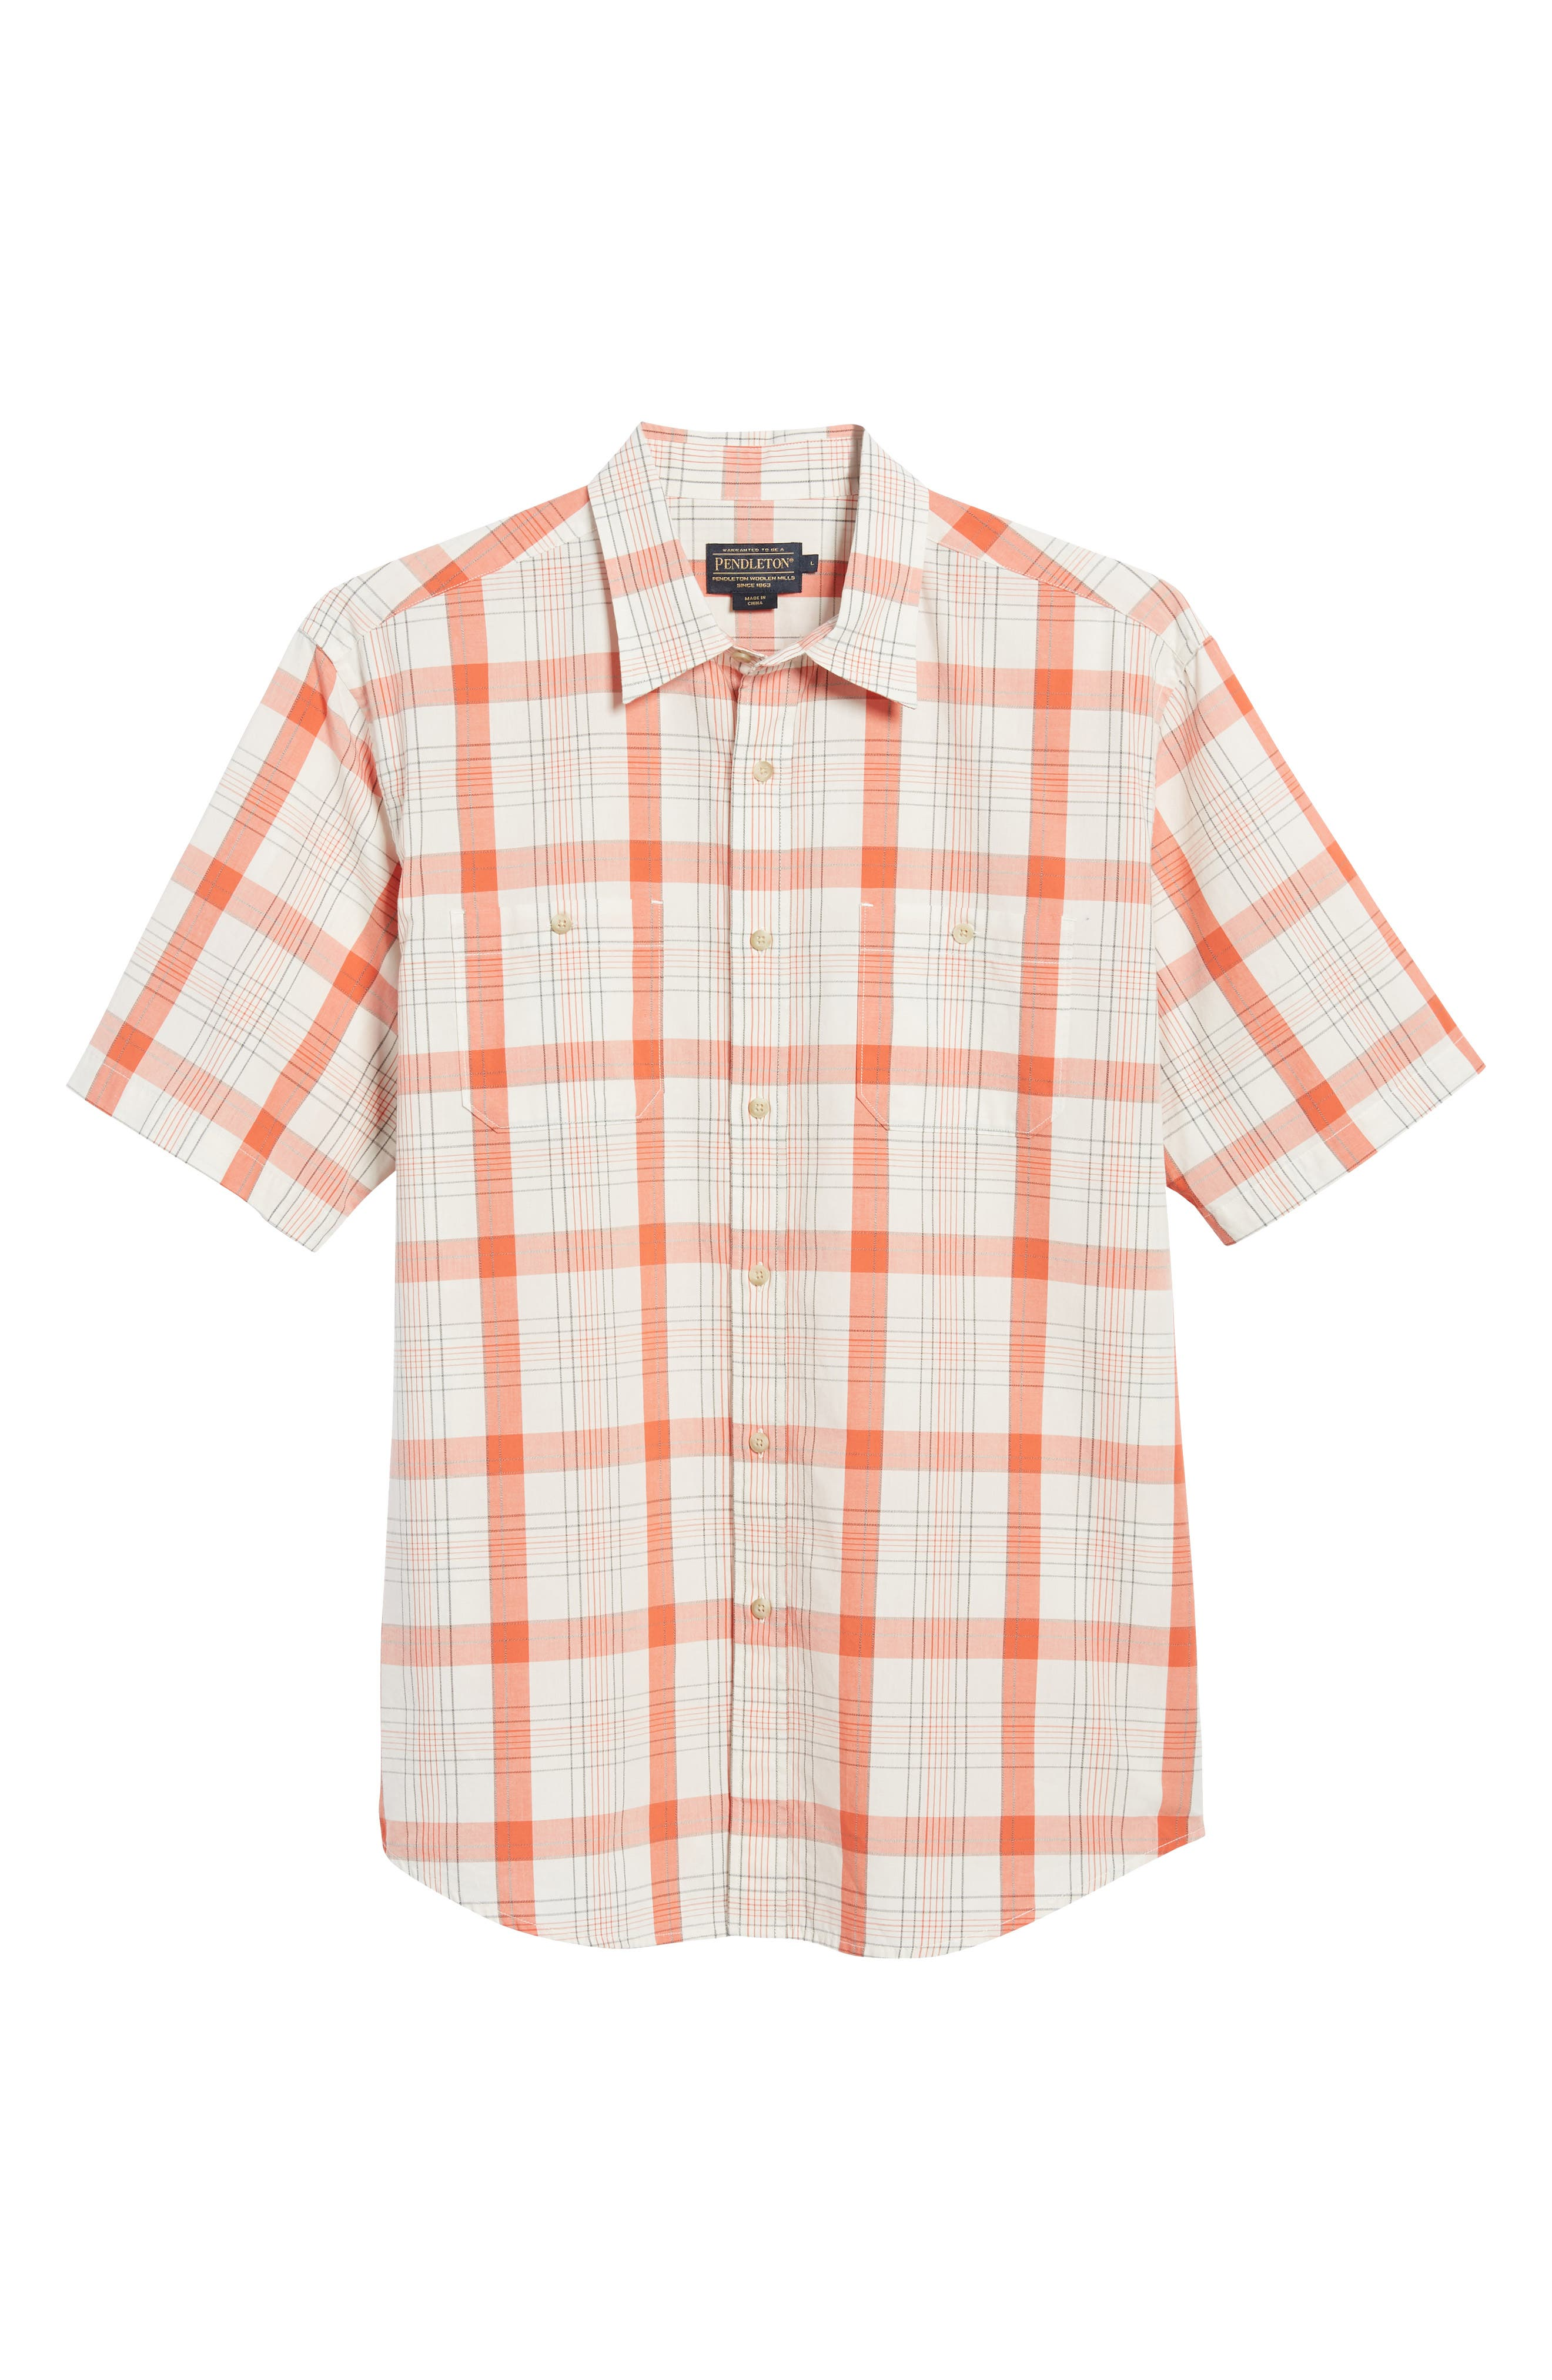 Clear Lake Short Sleeve Woven Shirt,                             Alternate thumbnail 6, color,                             Coral Plaid